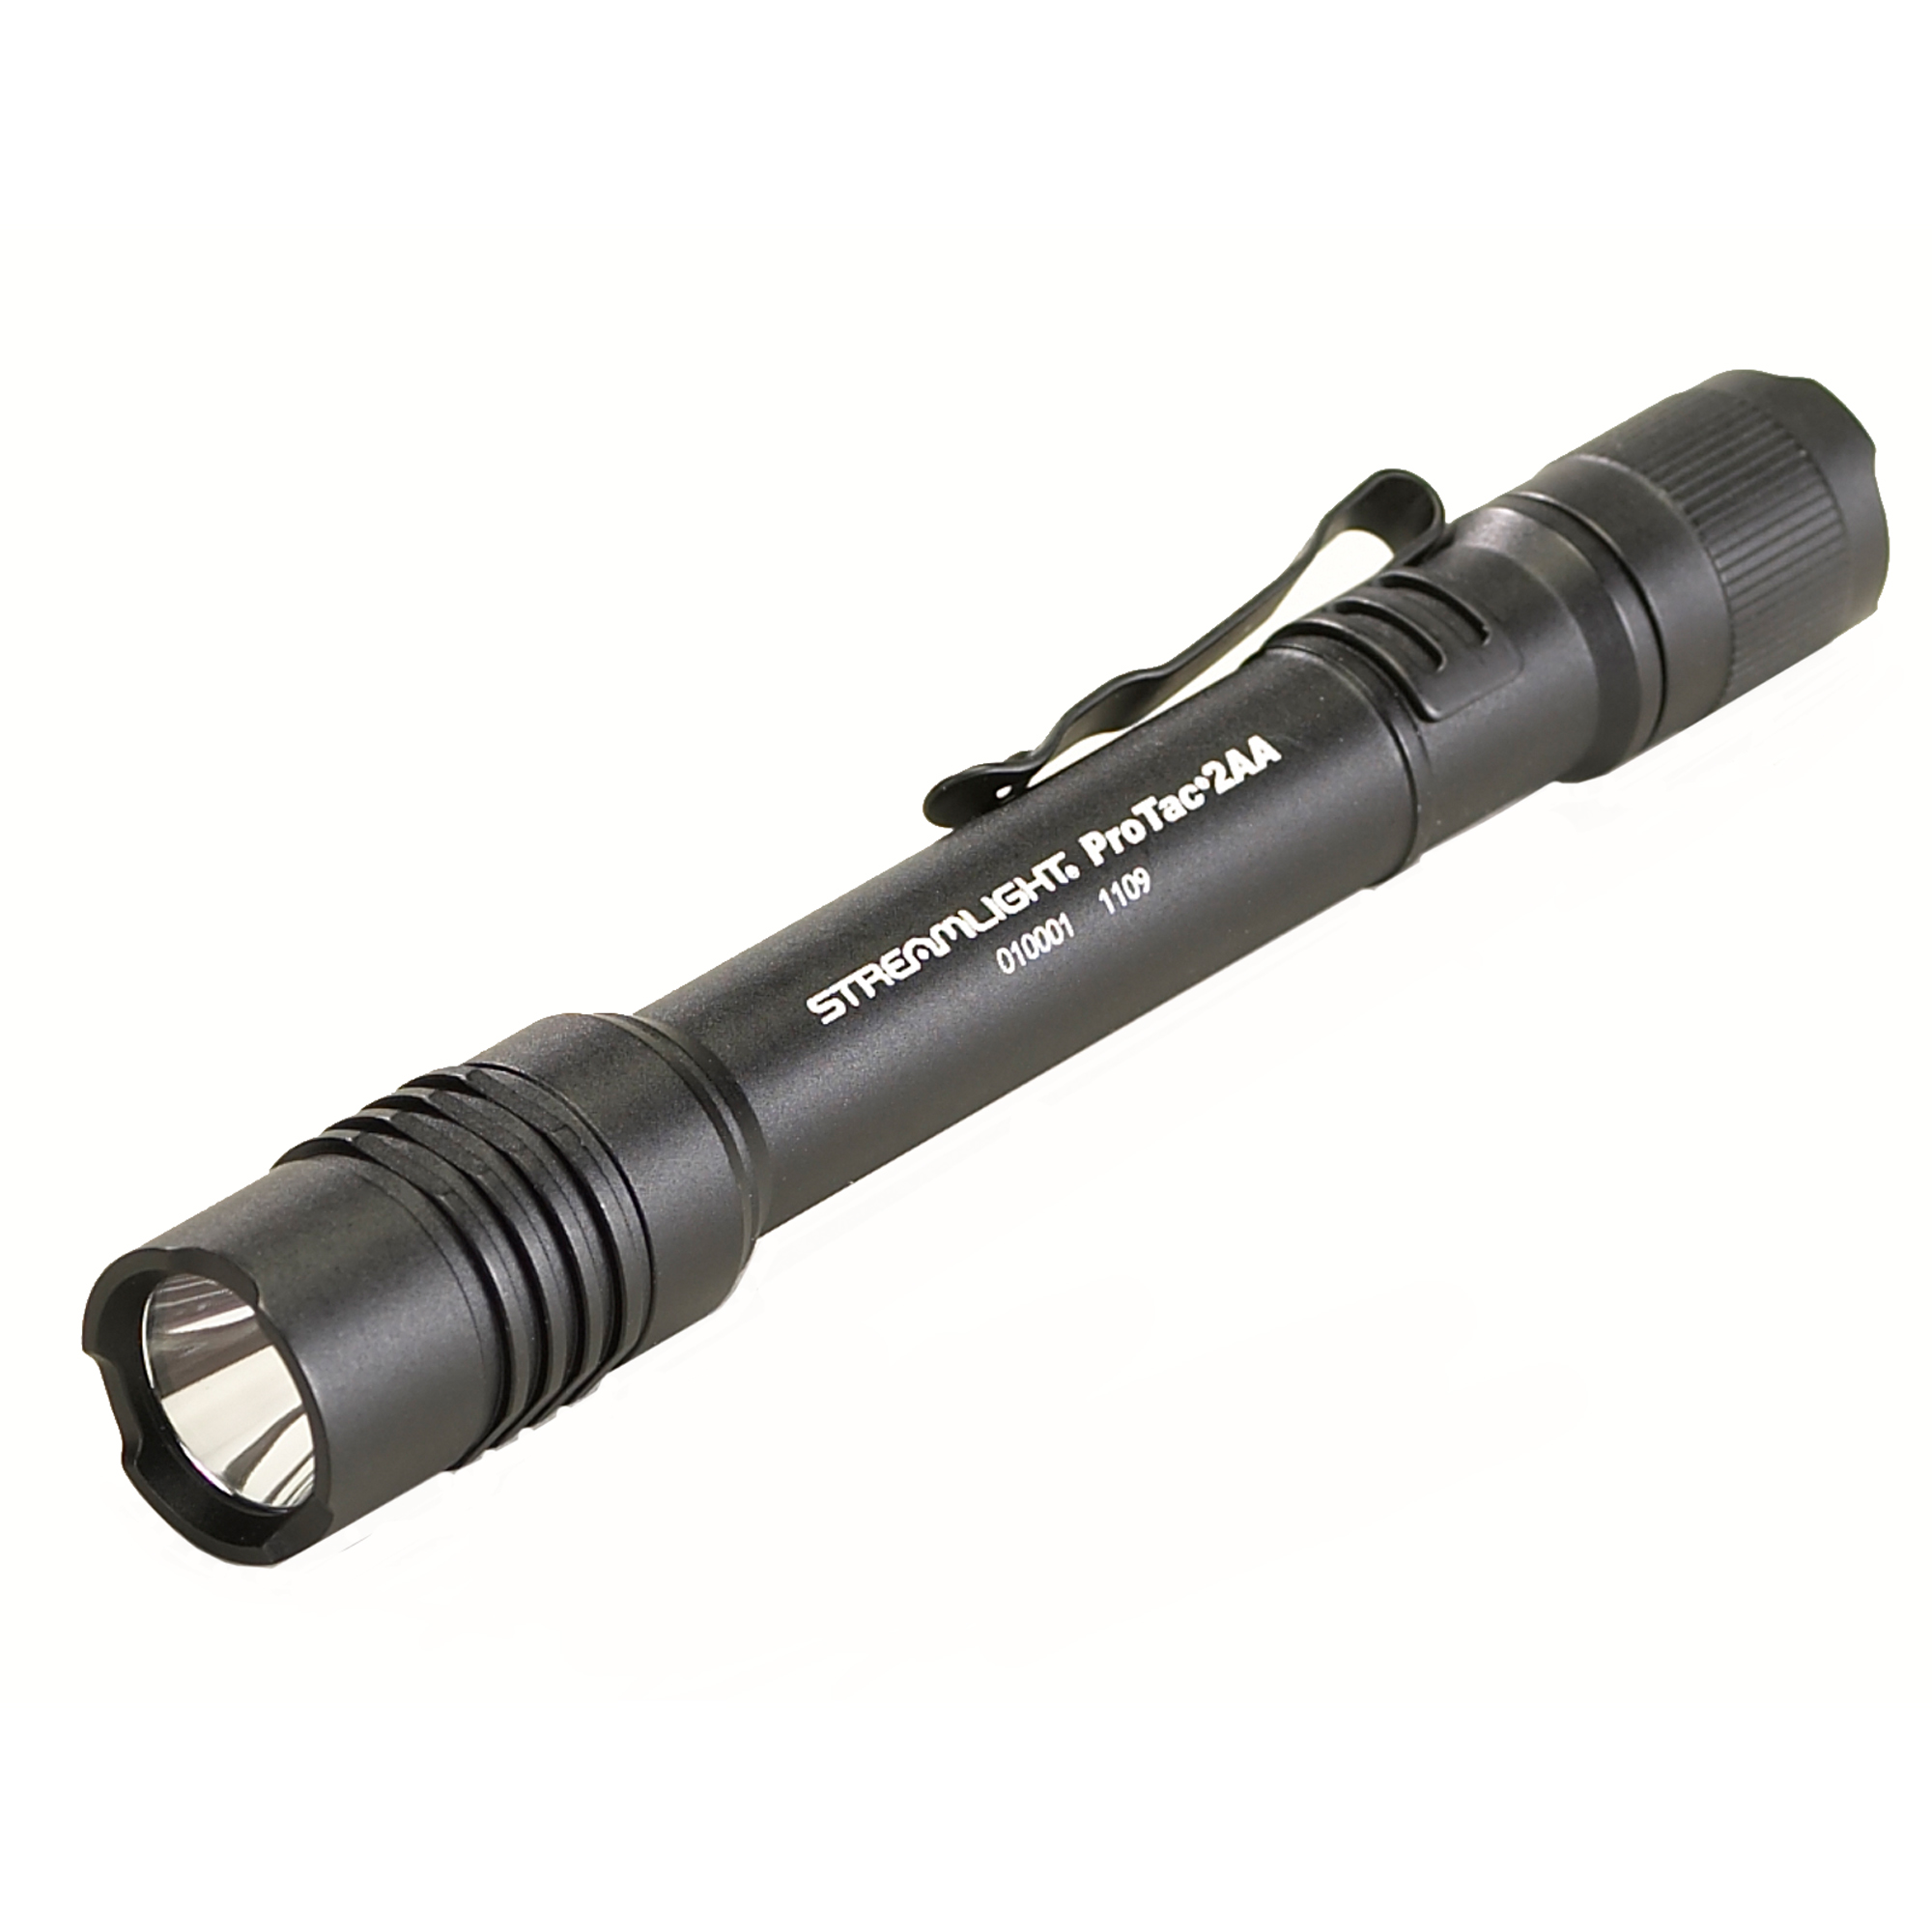 Streamlight Black ProTac Professional Tactical Flashlight With Removable Pocket Clip (2 AA Alkaline Batteries Included) by Streamlight